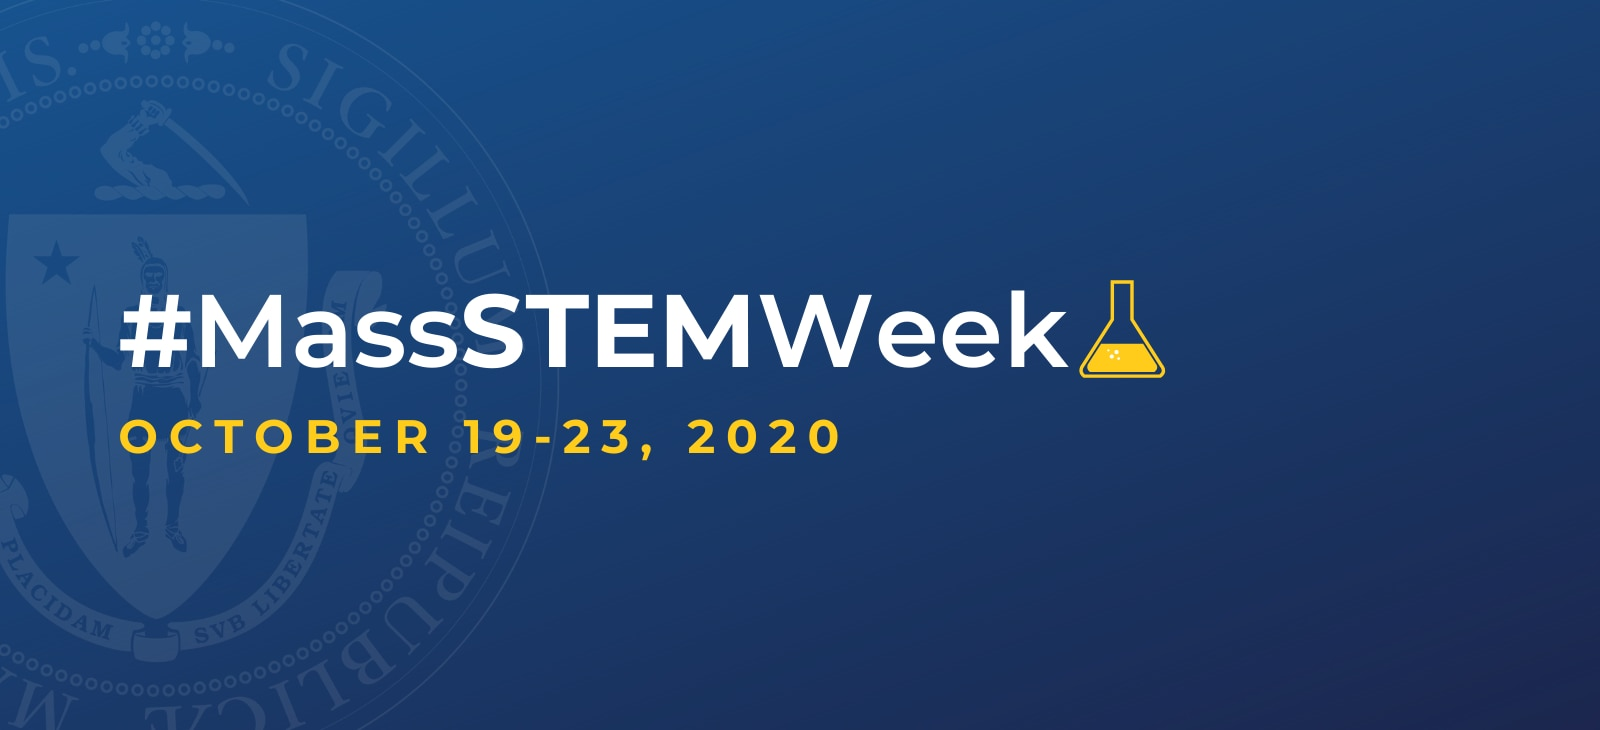 Baker-Polito Administration Announces Third Annual Statewide STEM Week